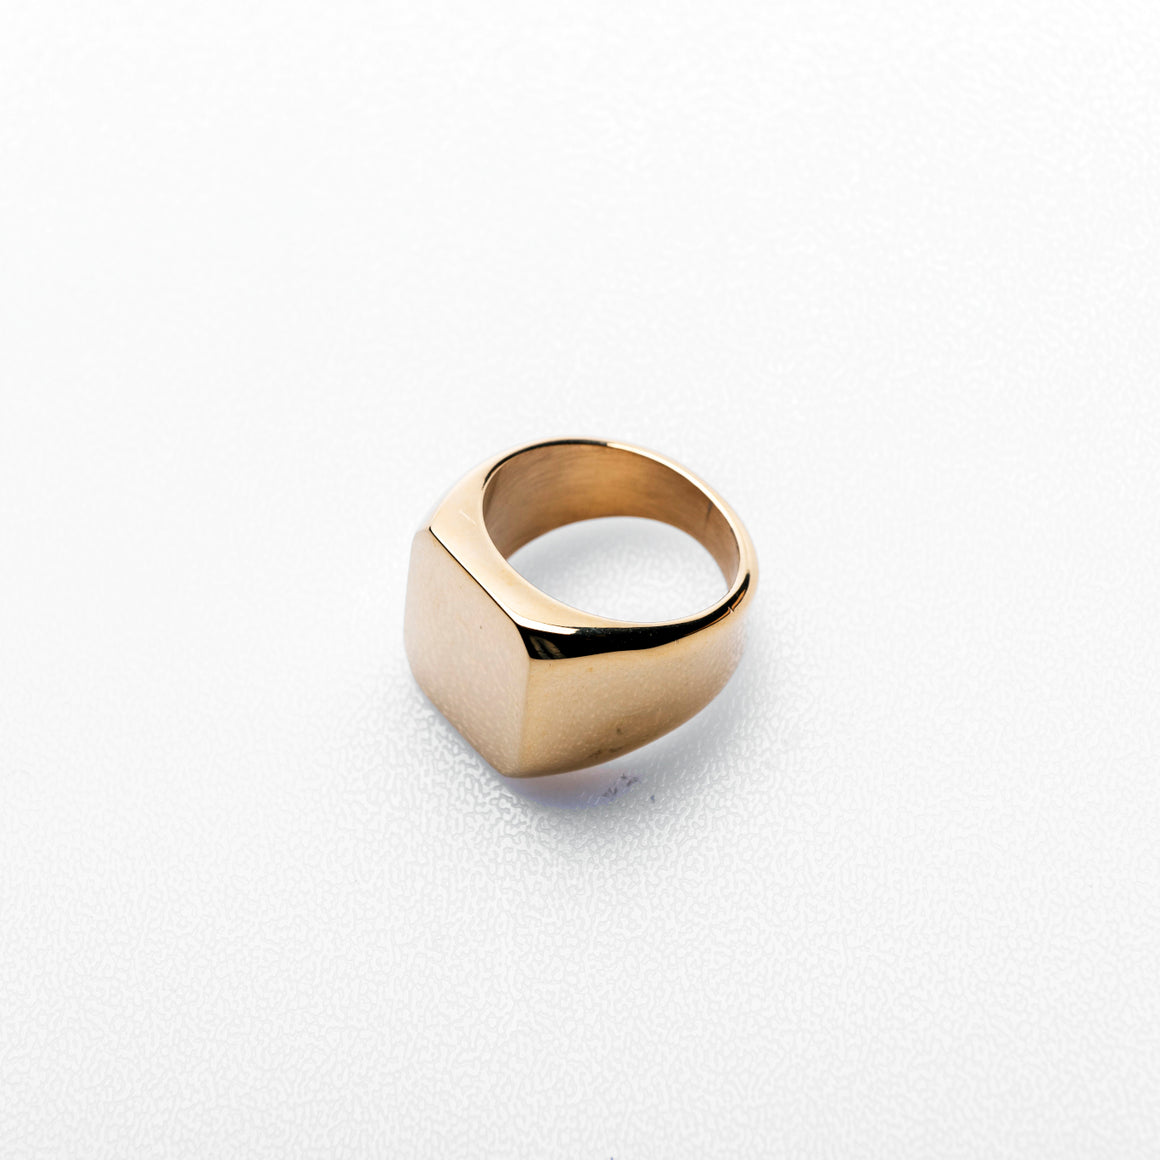 KEENA SQUARE SIGNET RING | GOLD - 54 Floral Streetwear Urban Clothing